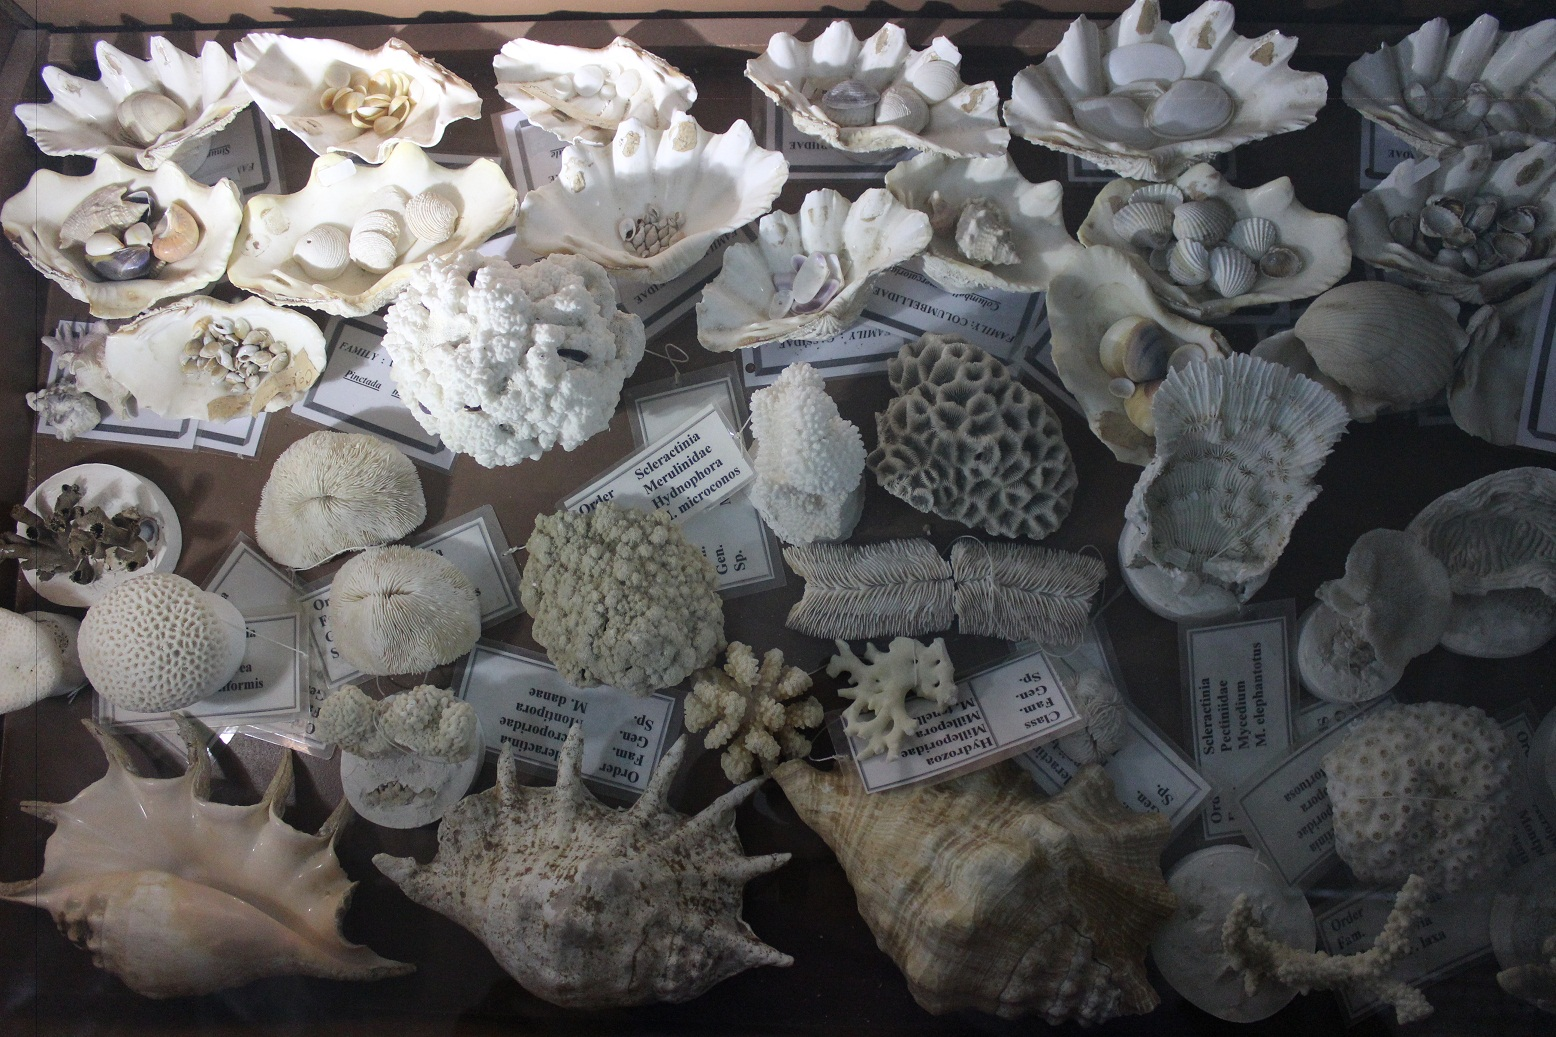 A collection of sea shells in the museum. (Photo by Aya Nader)